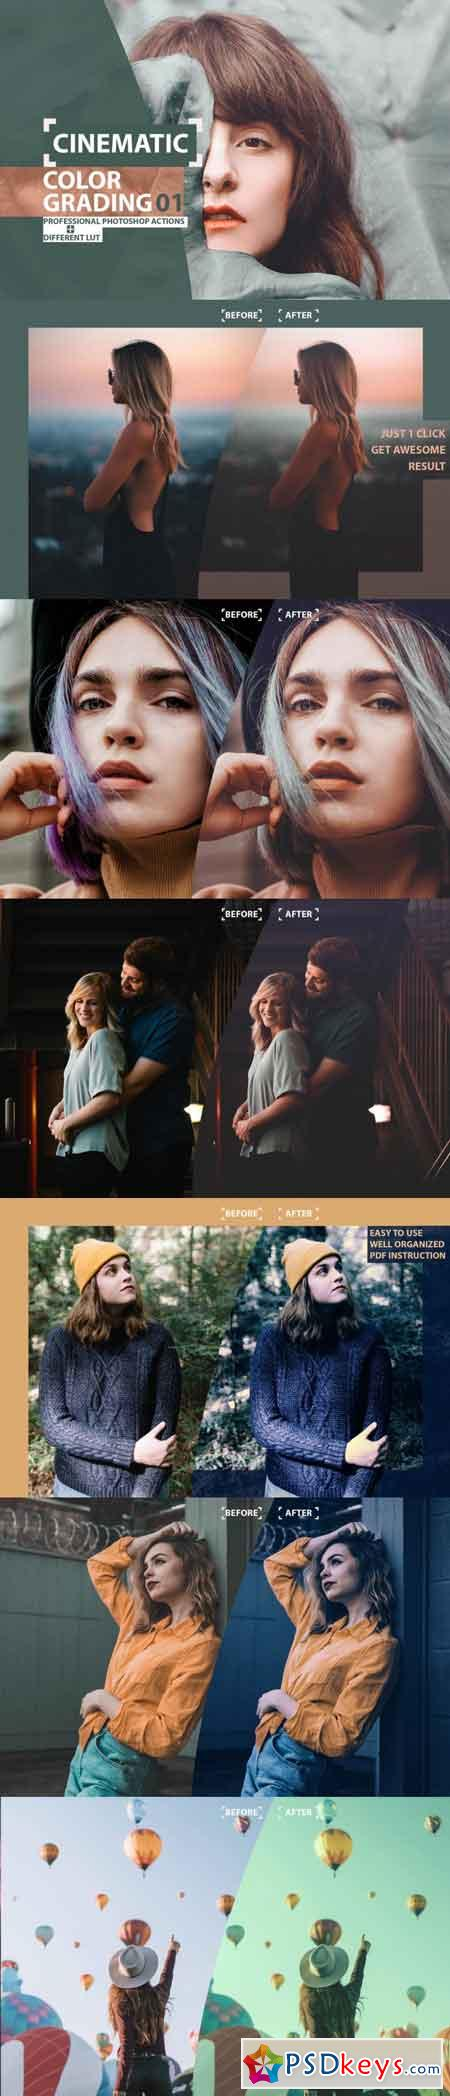 Cinematic Color Grading 01 Premium Photoshop Actions 3505473